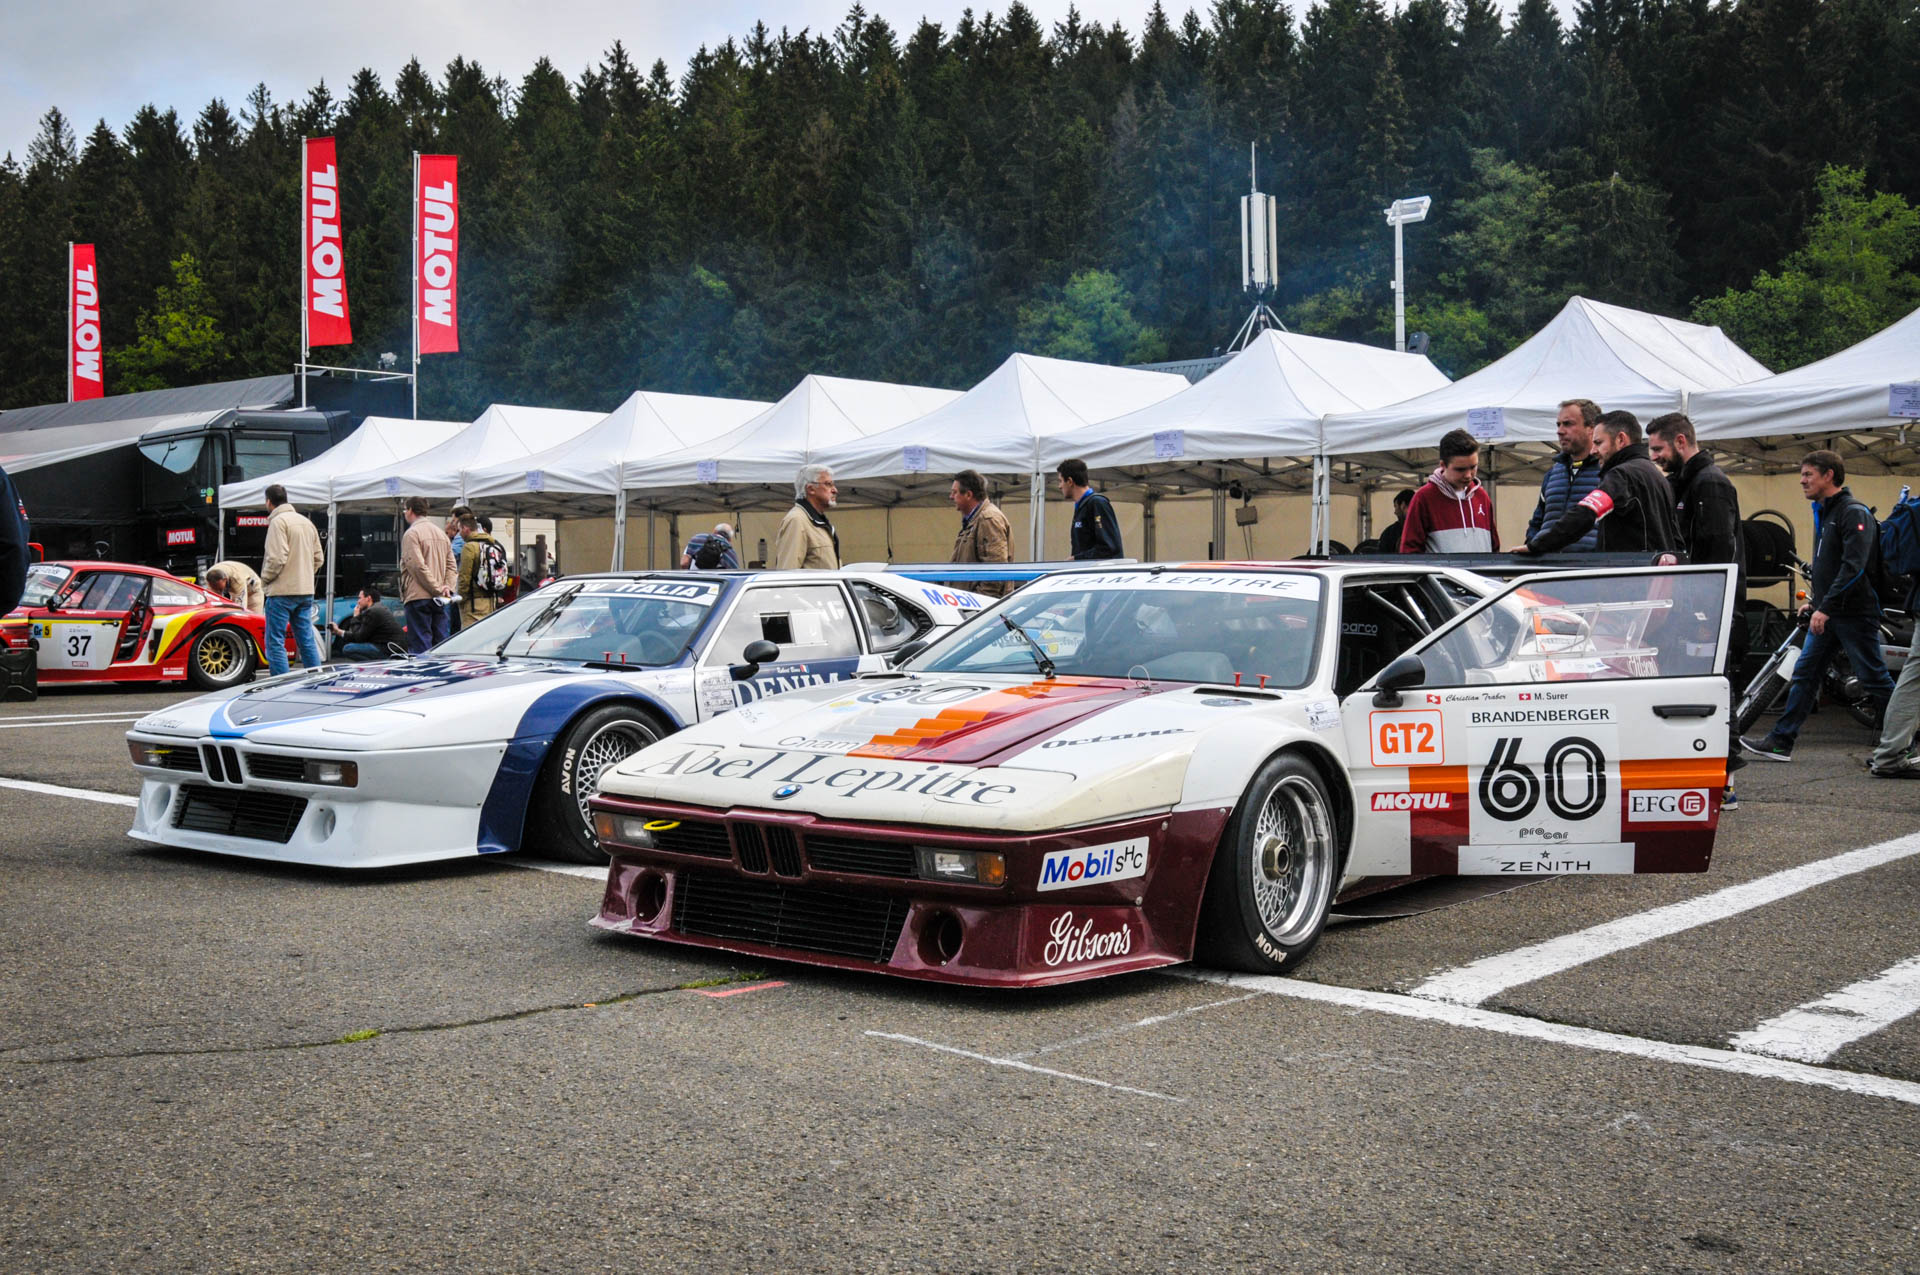 Spa Classic Relive Classic Endurance Racing The Classic